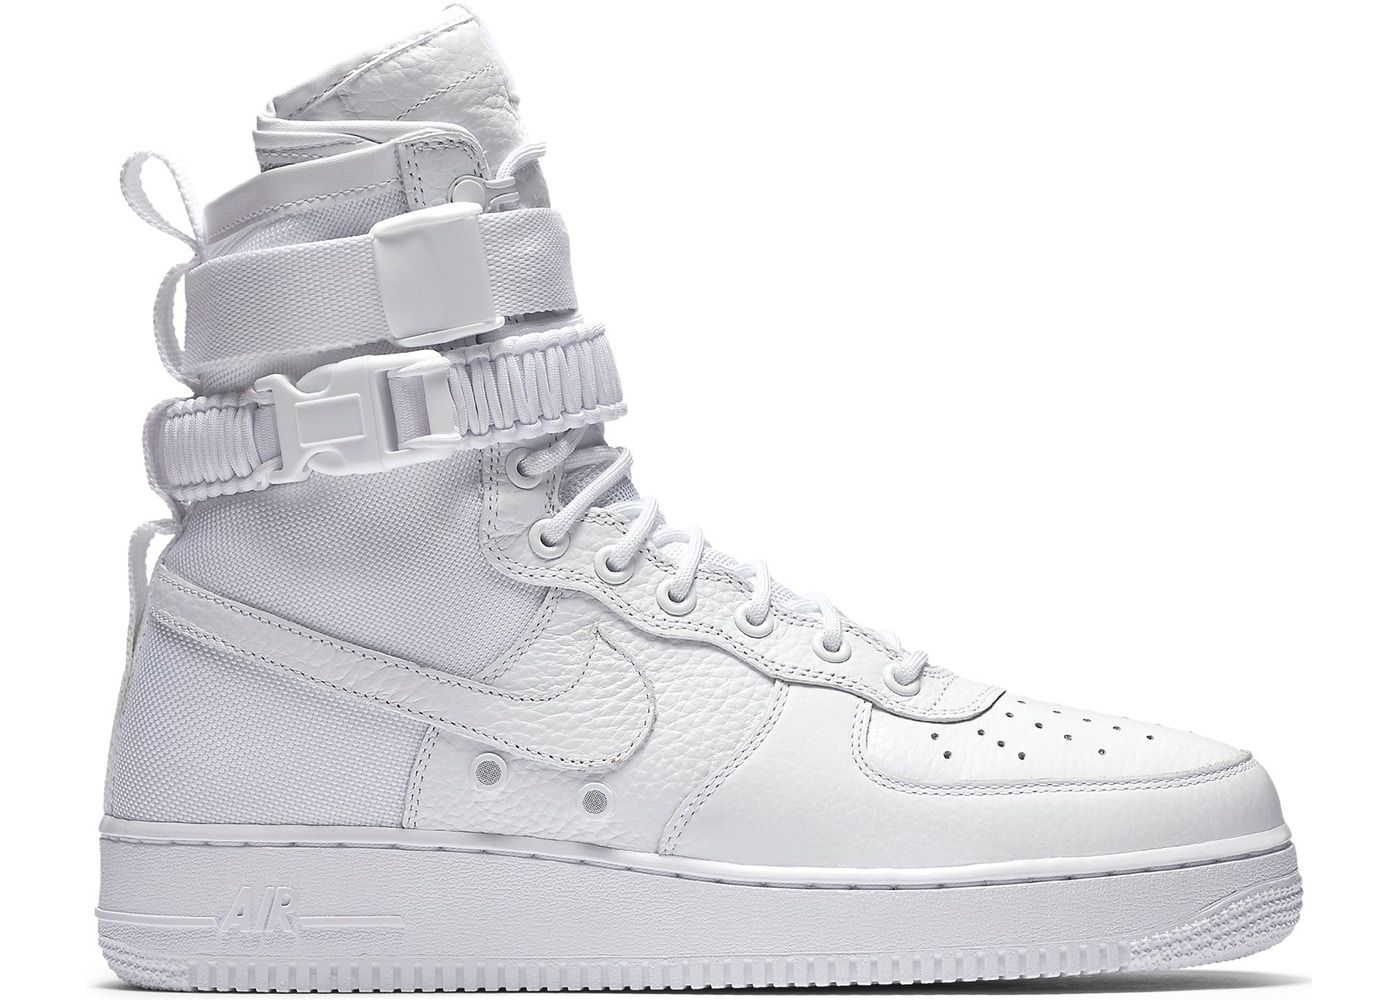 Nike SF Air Force 1 High White (2017) in 2020 | White nike